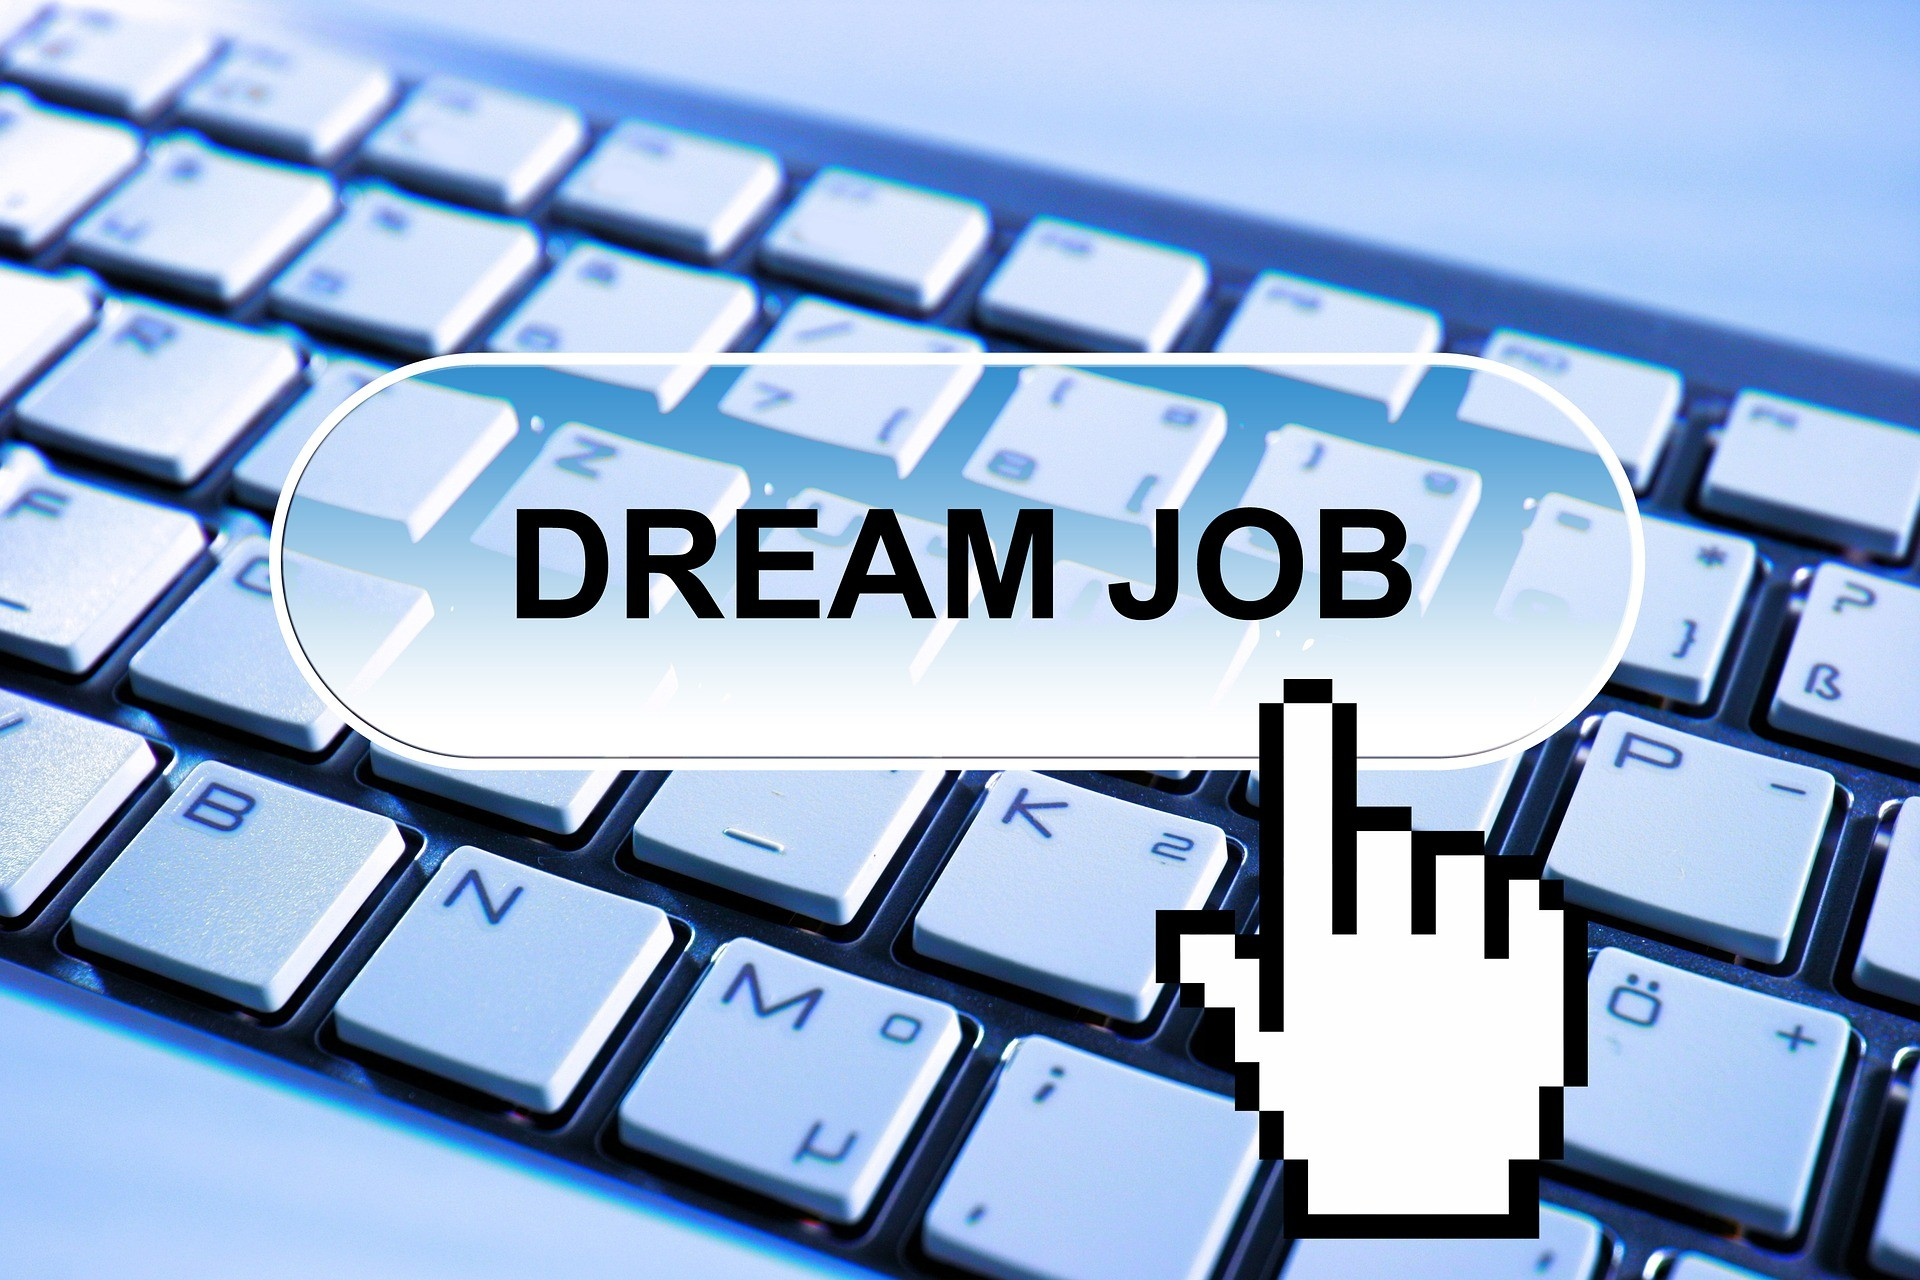 Hand icon pointing to the words dream job with keyboard in the background